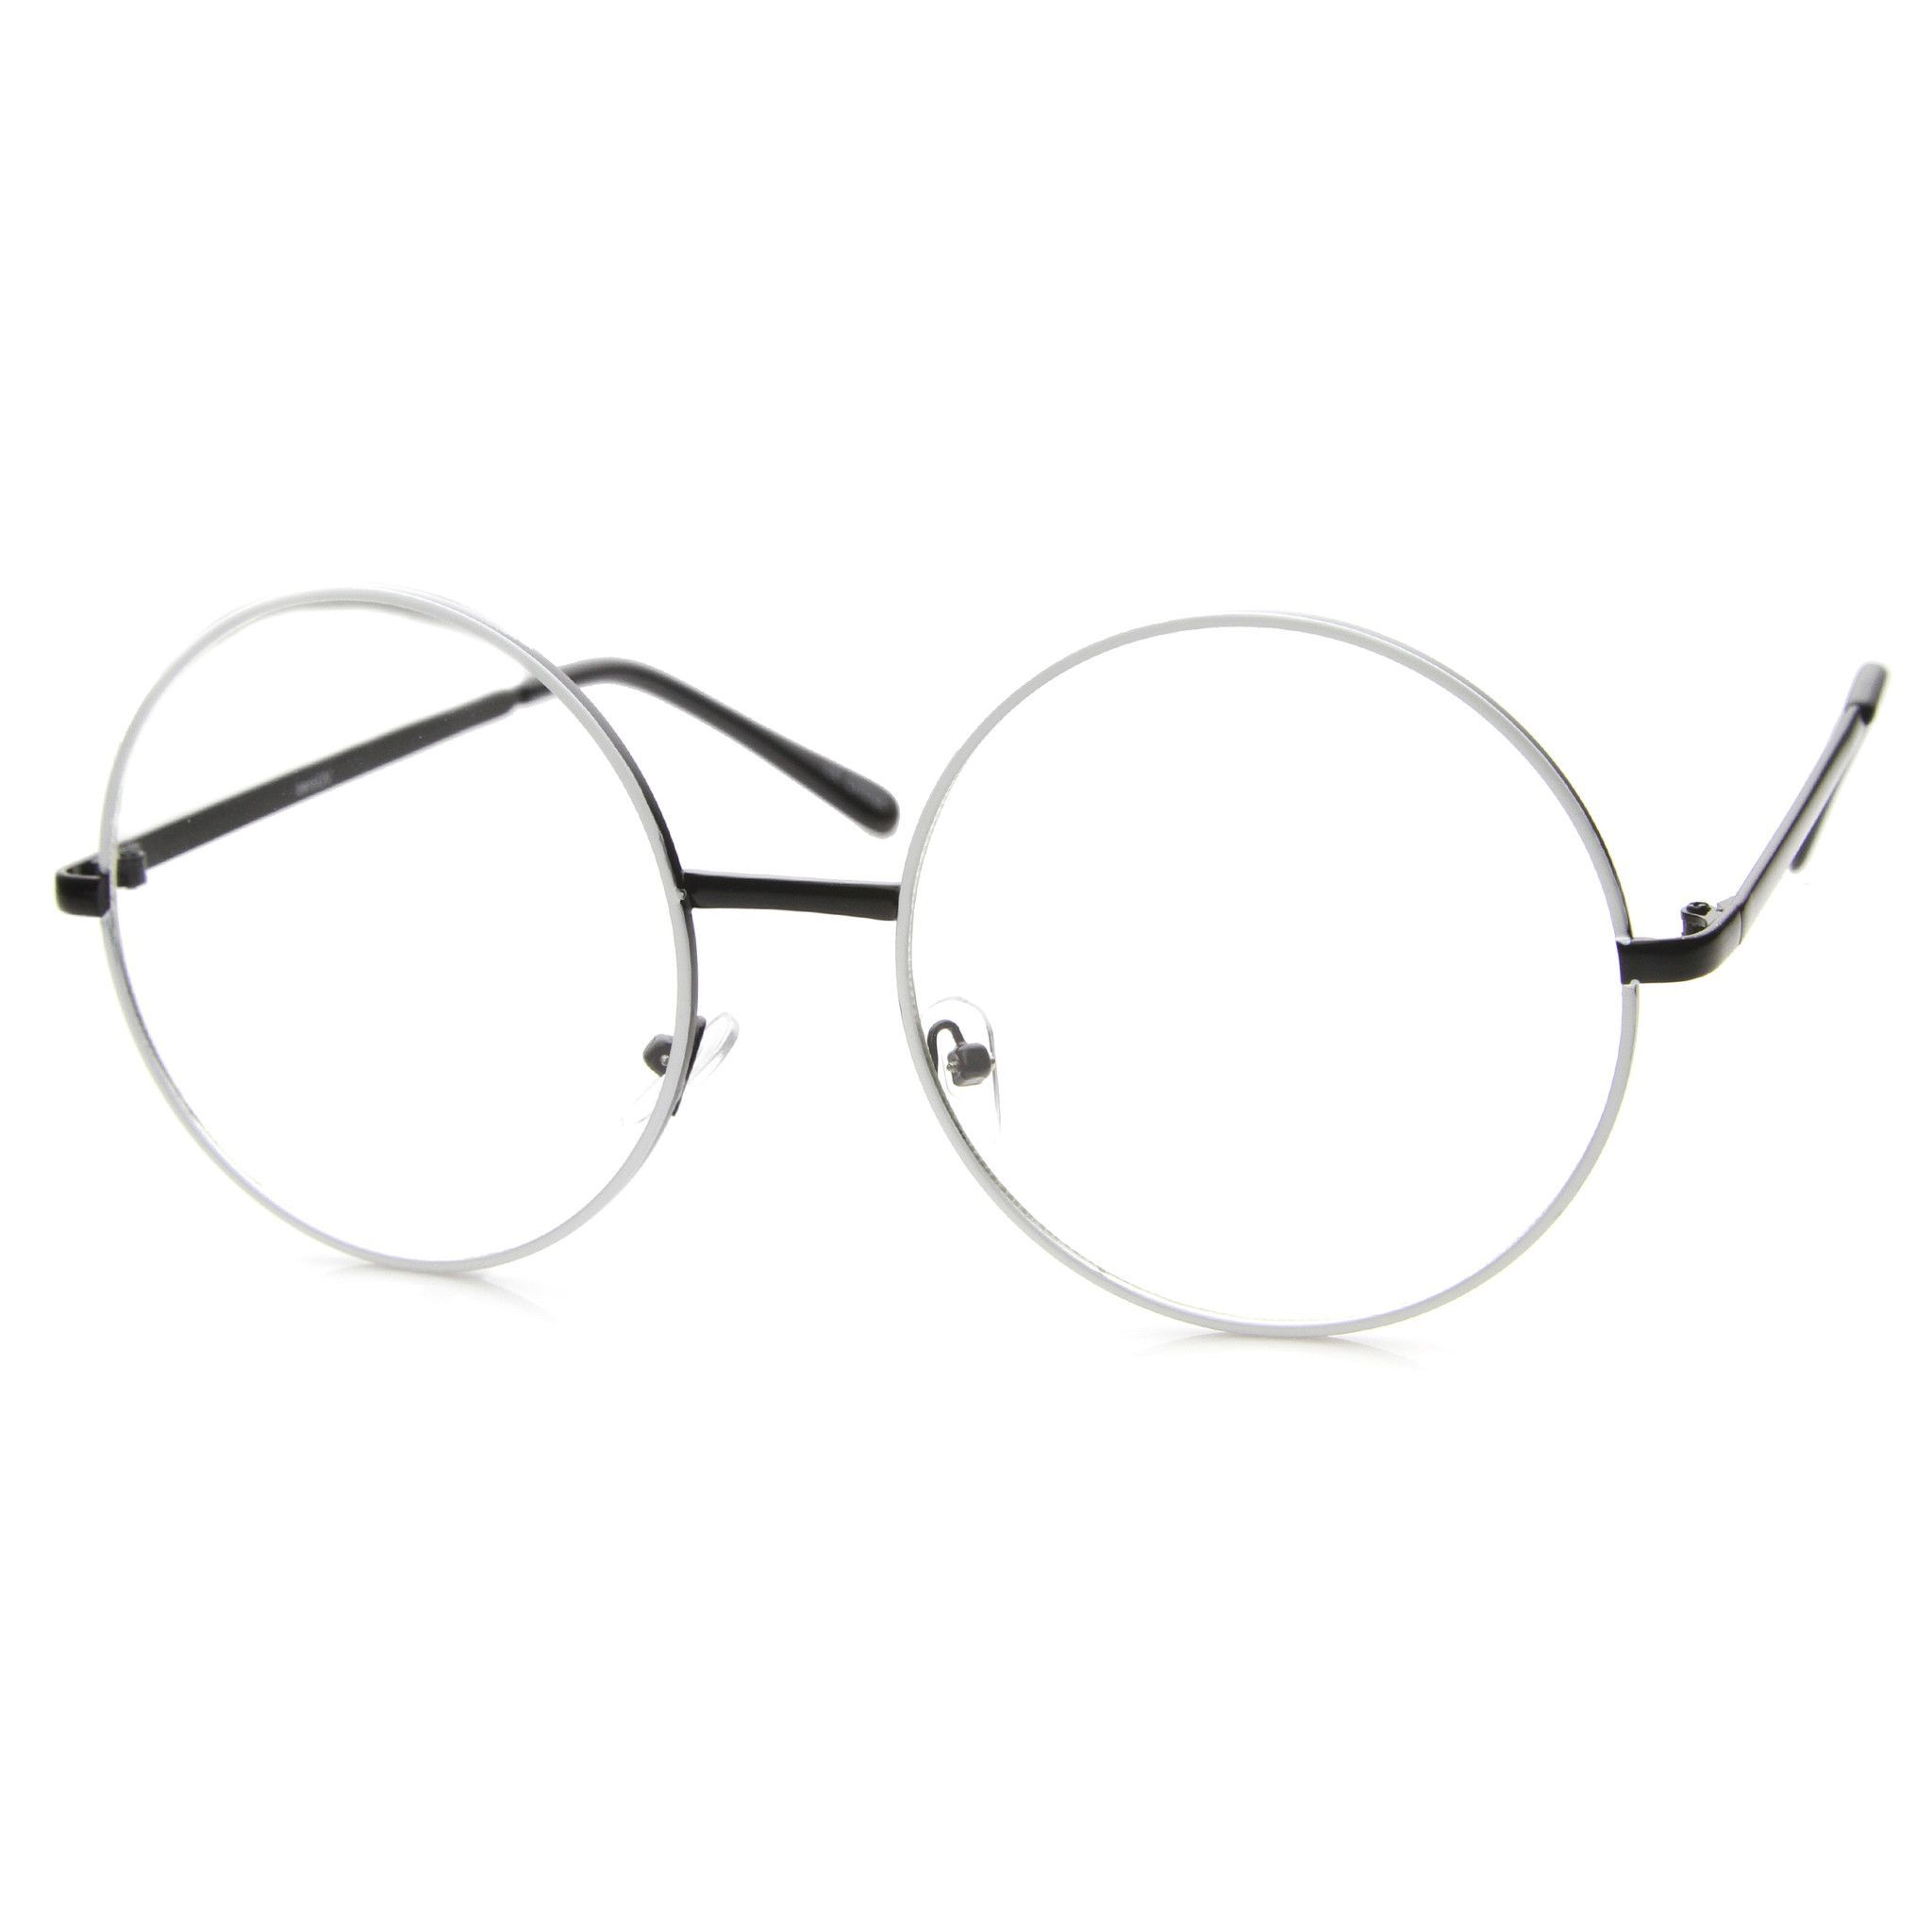 1fe8a38861f0 Large oversize round circular glasses that features a metal frame and clear  lenses. Round glasses are the very definition of an oversize metal circle  frame.